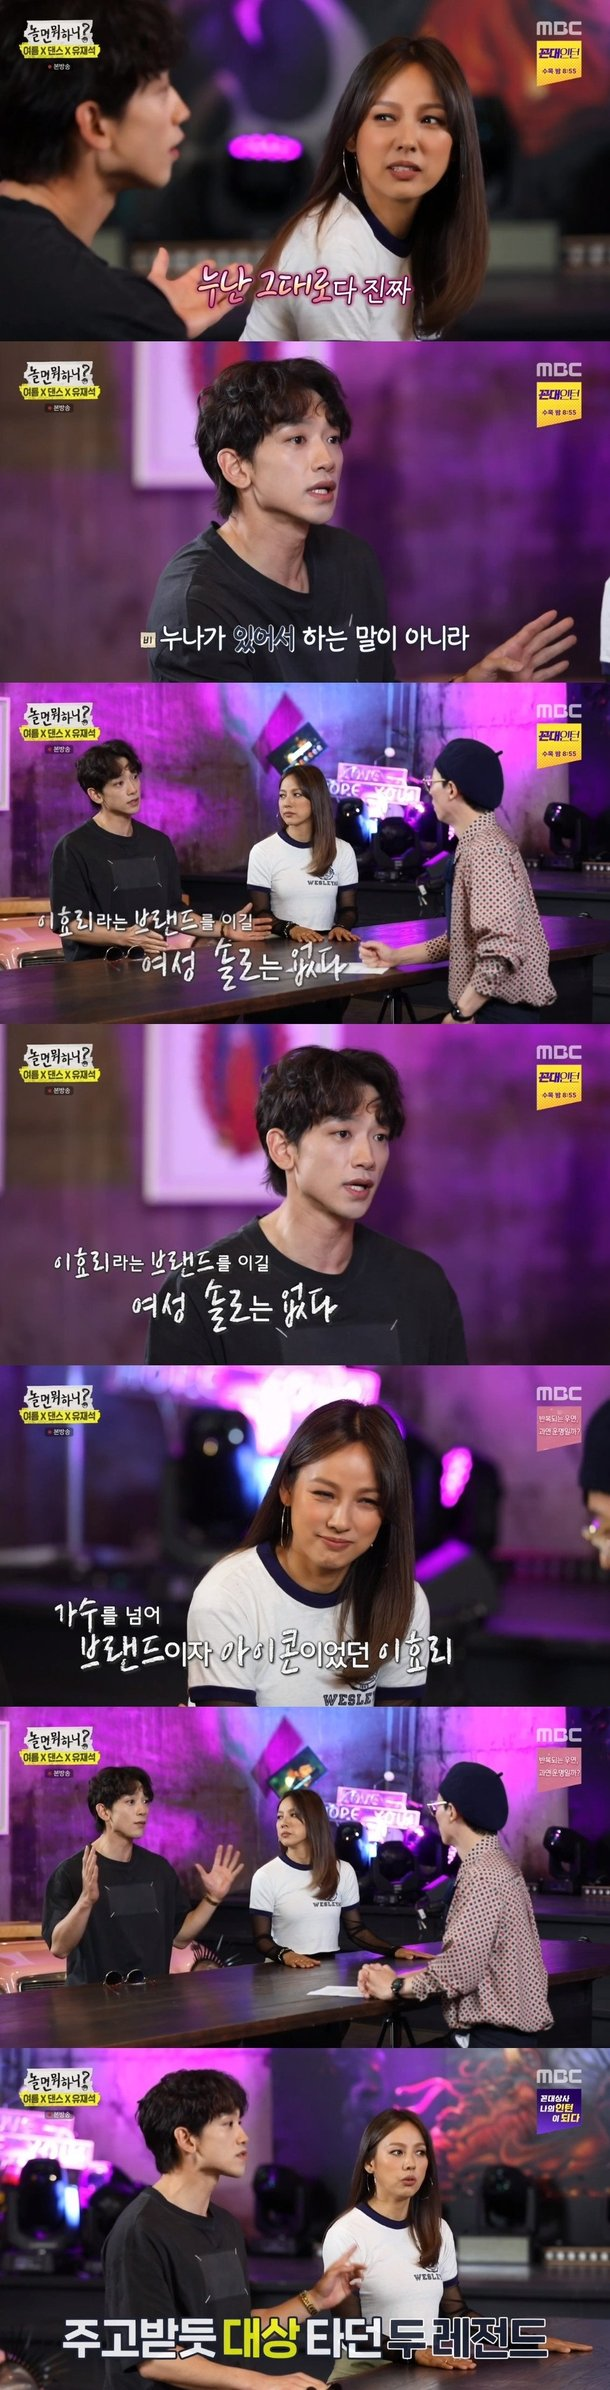 Singer Rain talks about how there's still no female solois who can beat Lee Hyori in 'Hangout With Yoo?'